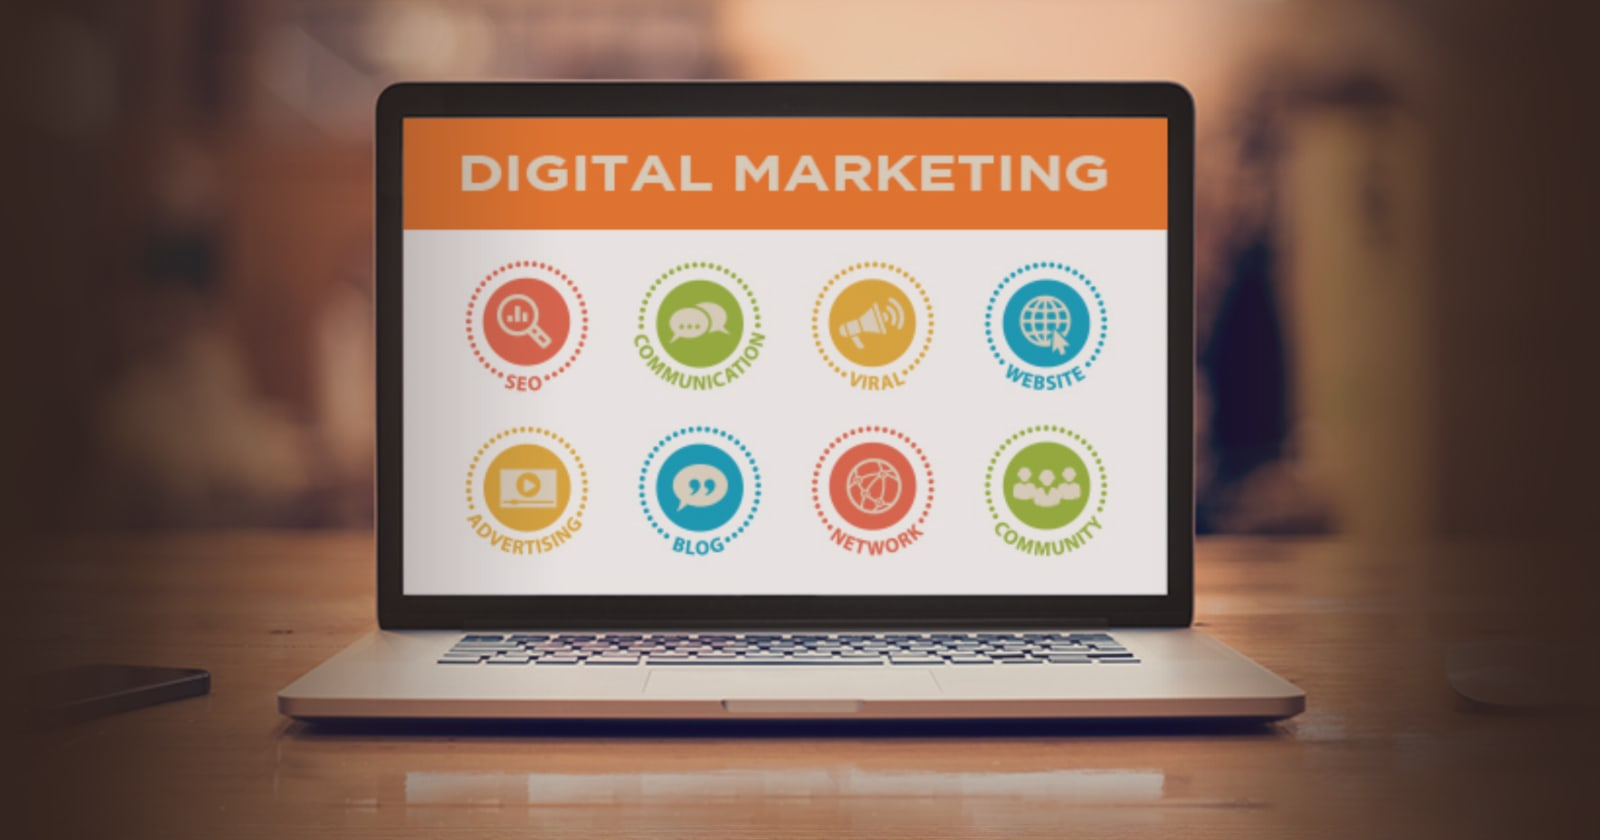 5 Best Digital Marketing Courses to Take Your Career to the Next Level